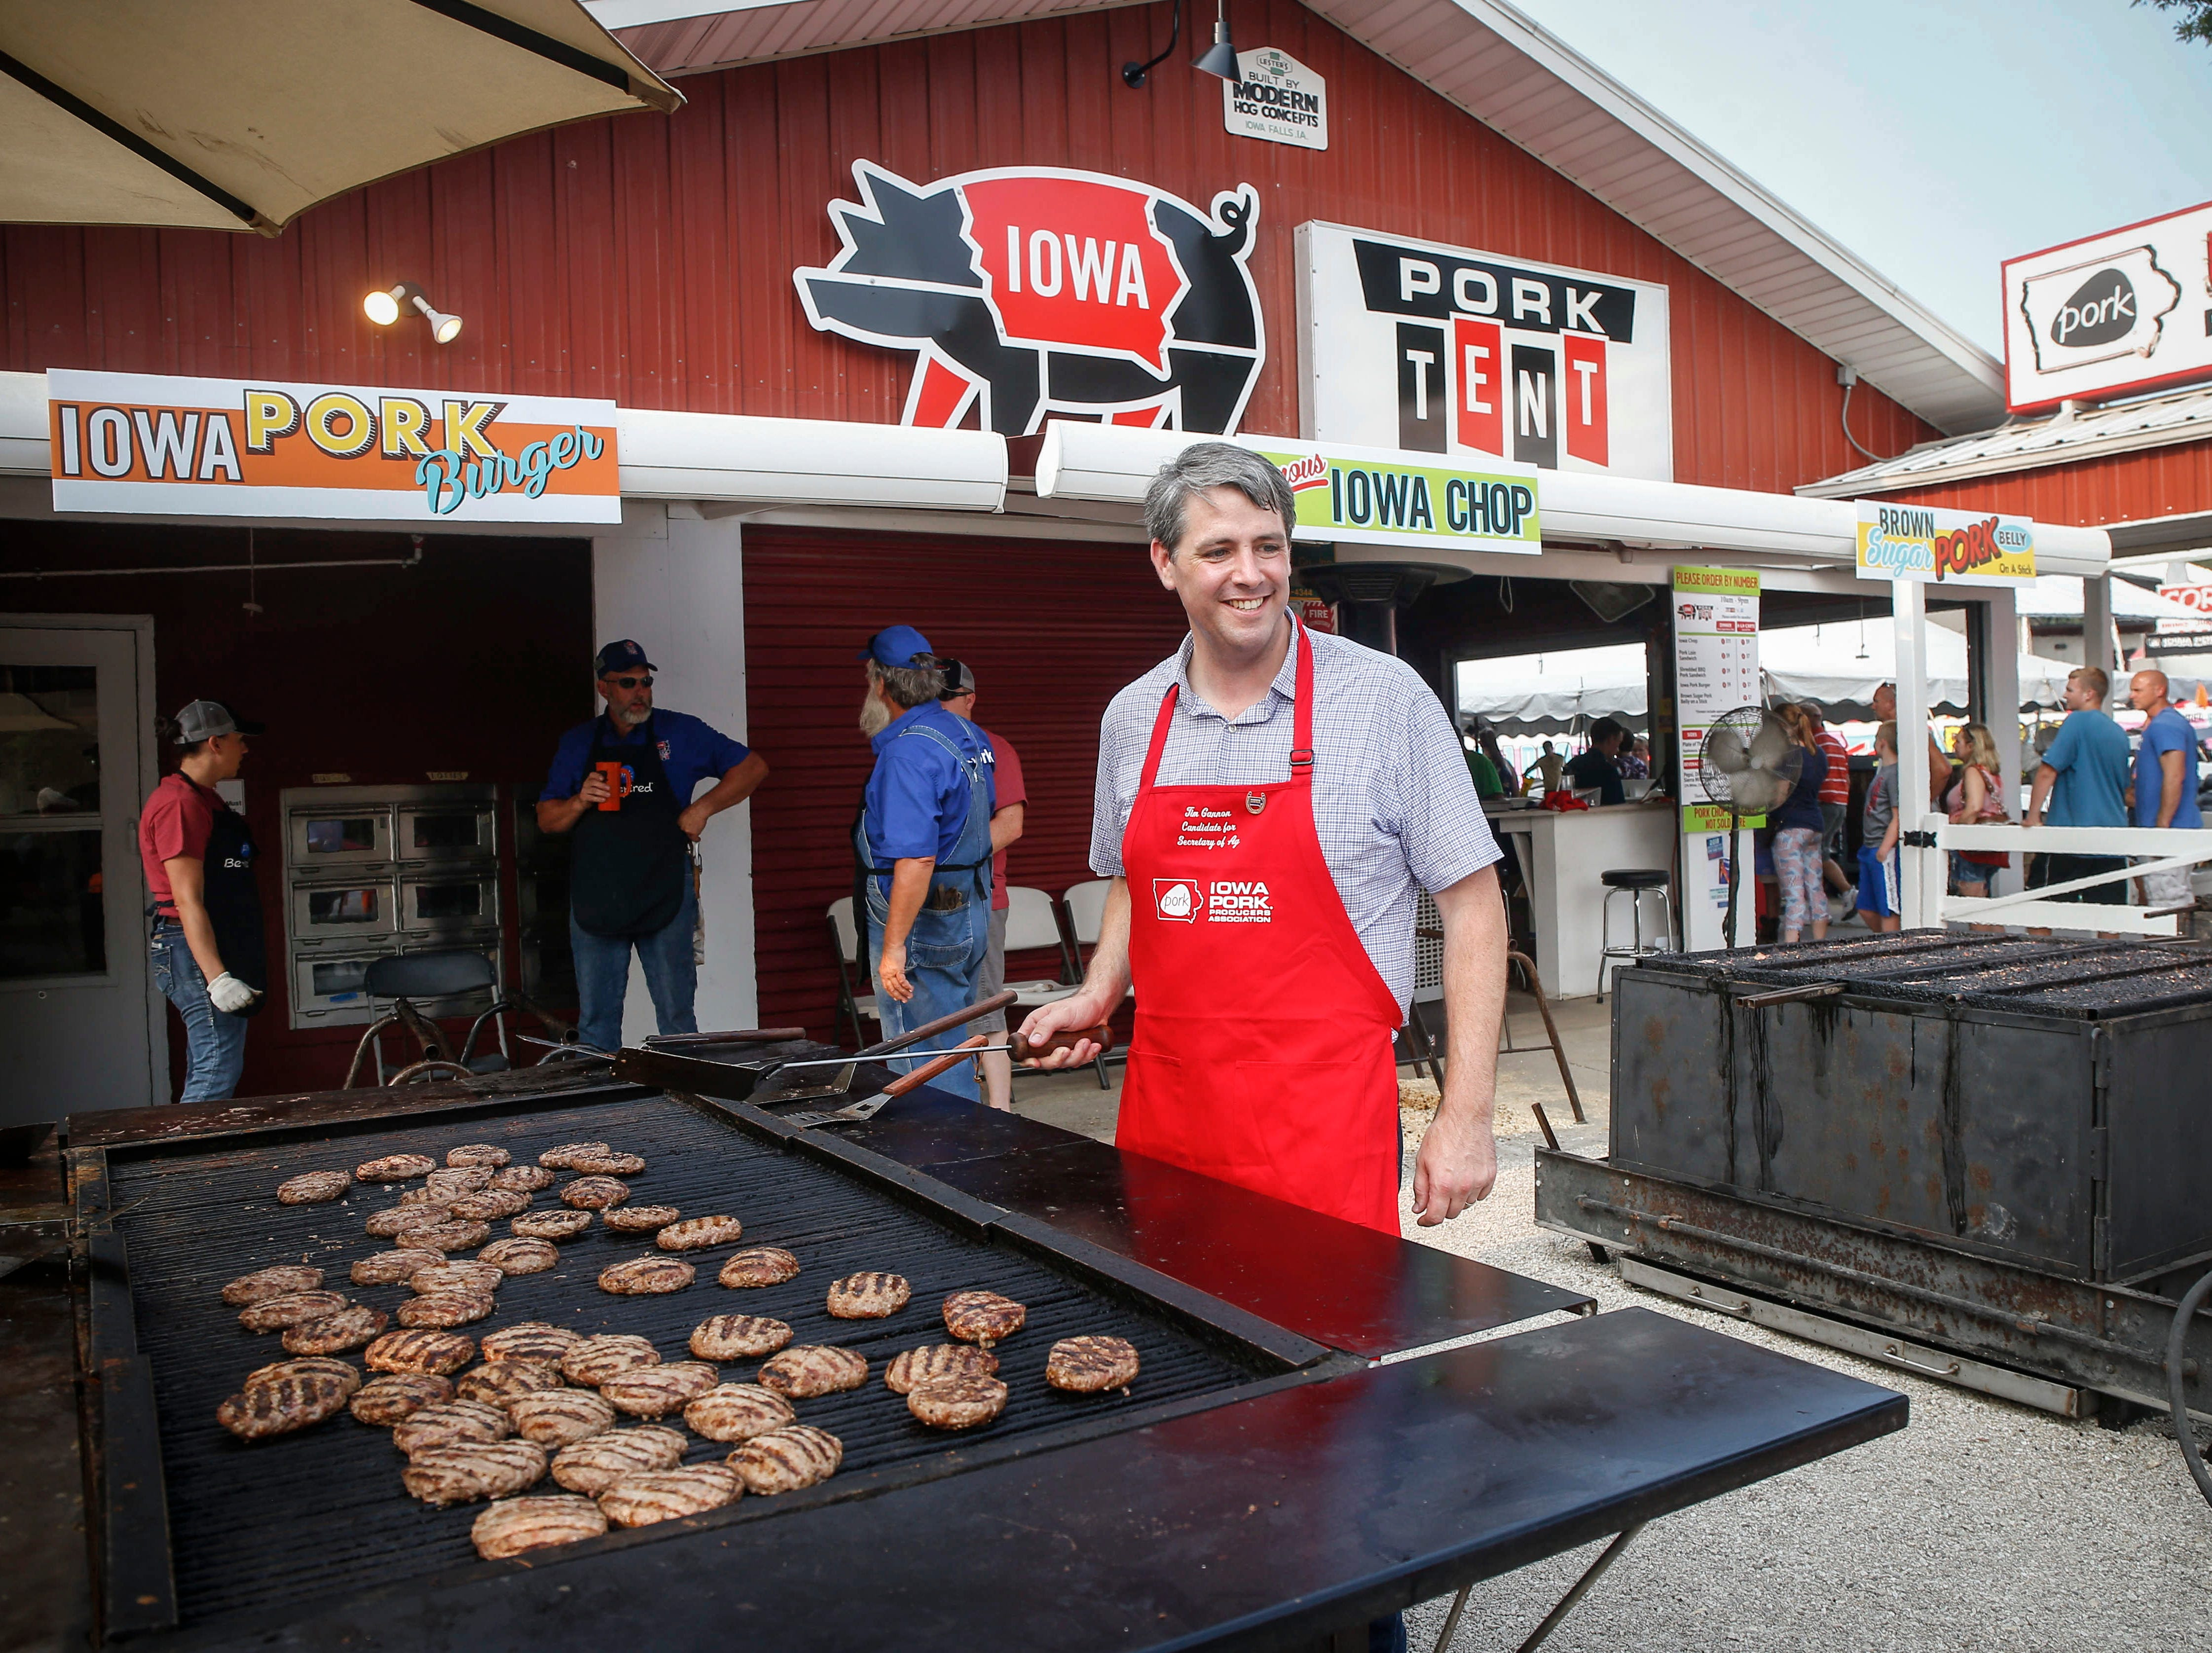 Tim Gannon, Democratic candidate for Iowa Secretary of Agriculture, stopped by to flip pork burgers at the Iowa Pork Tent on Saturday, Aug. 11, 2018, during the Iowa State Fair in Des Moines.